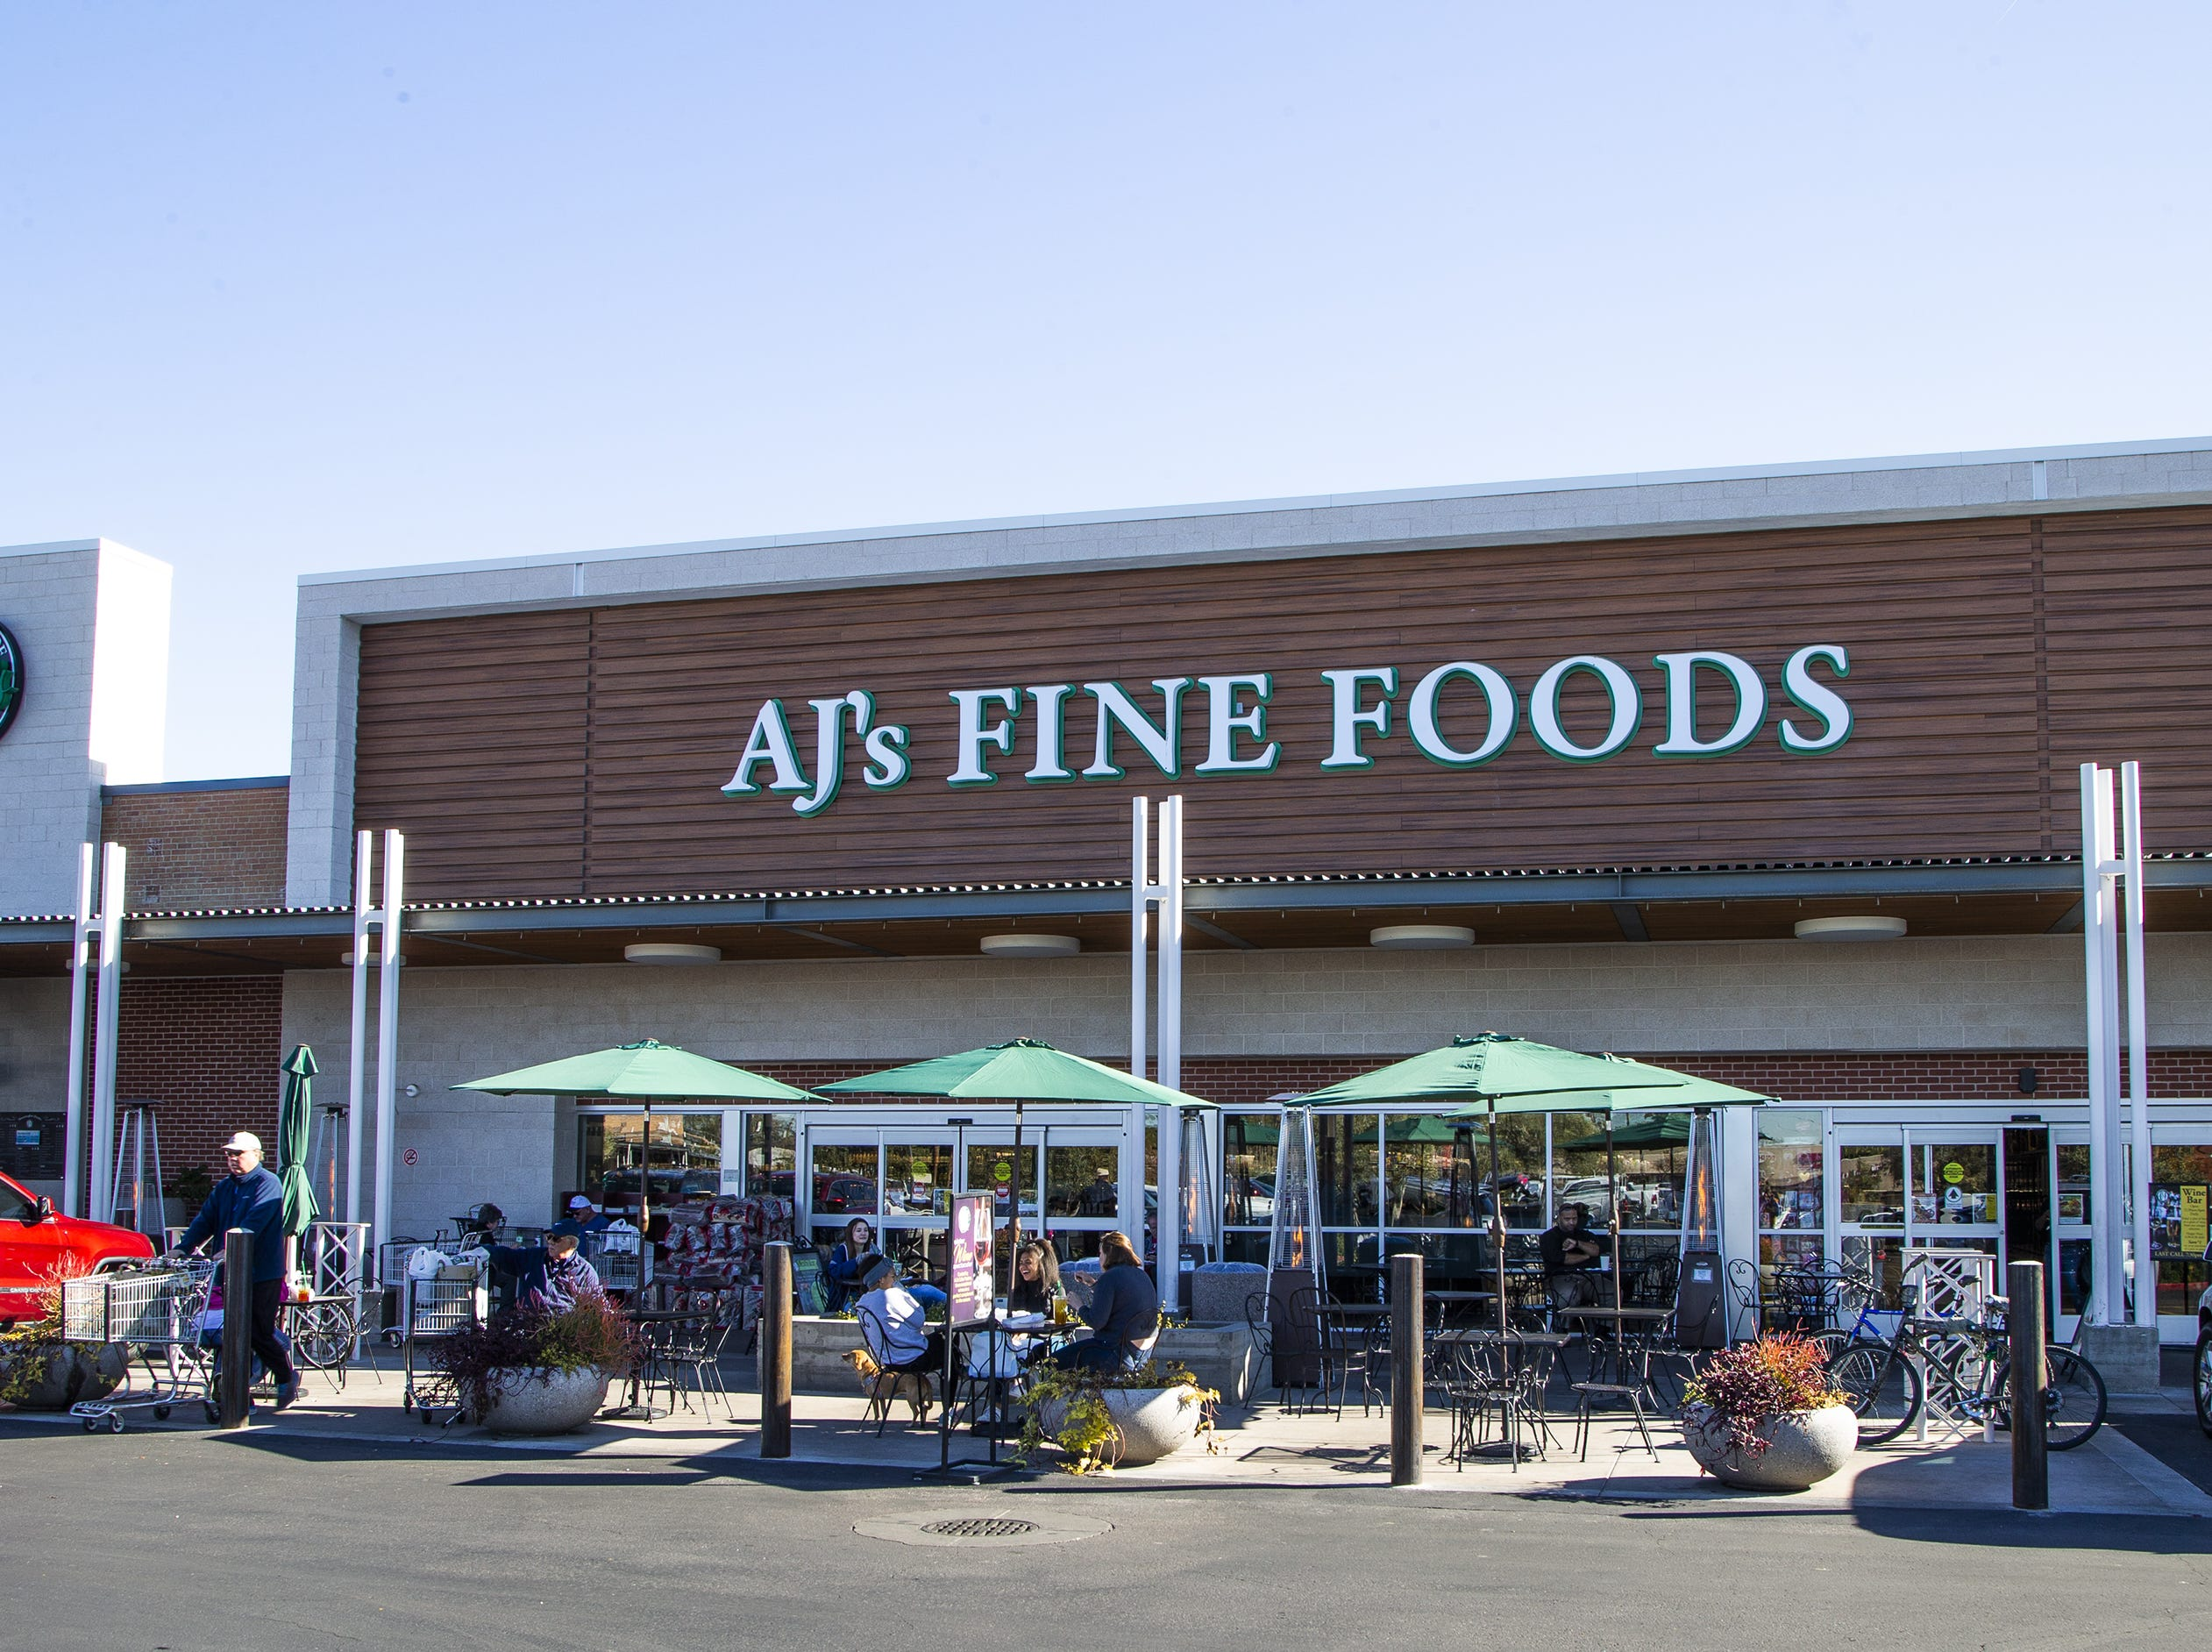 AJ's Fine Foods is an upscale grocery store at Uptown Plaza, a strip mall at the intersection of Camelback Road and Central Avenue in Phoenix.